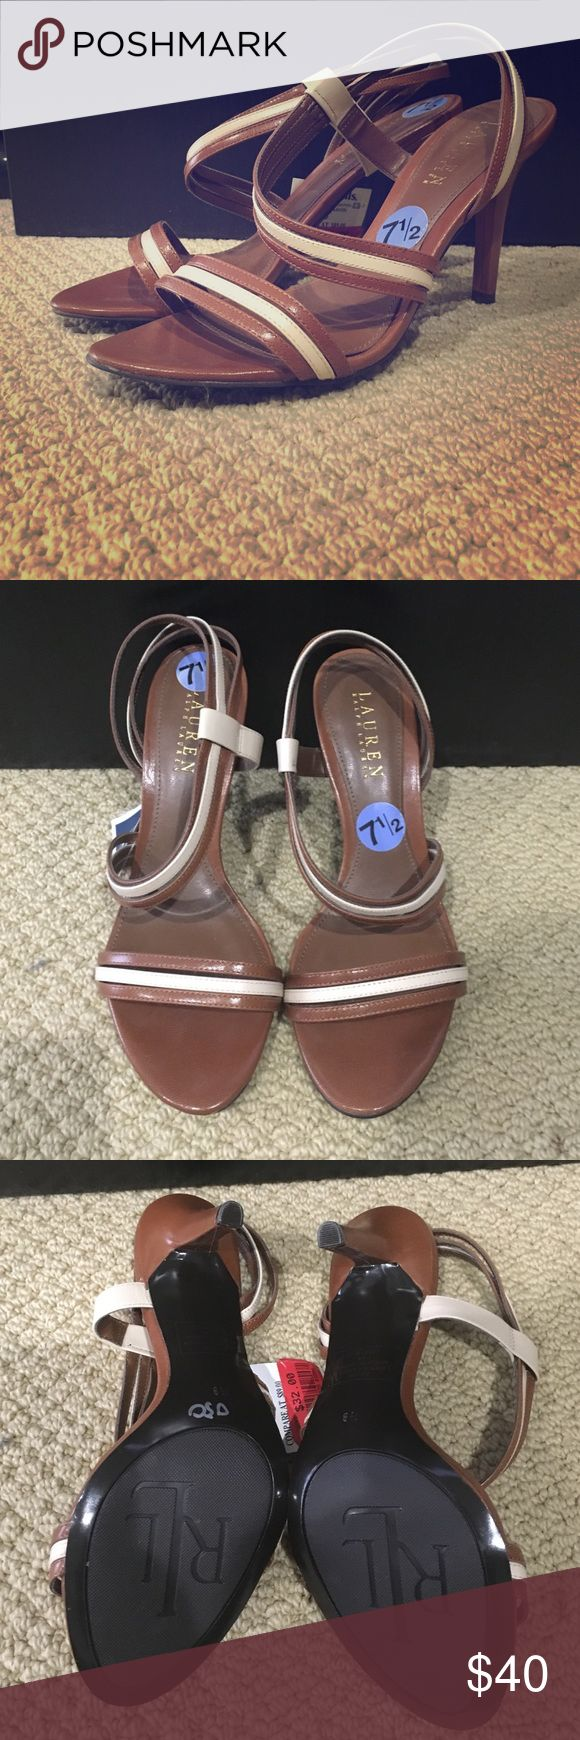 """Ralph Lauren Addie slingback sandal Brand new never been worn Ralph Lauren Addie sandal with 3.5"""" heel. Extremely comfortable, neutral sandal that will go with anything. Perfect for weddings, parties or night out! Lauren Ralph Lauren Shoes Sandals"""